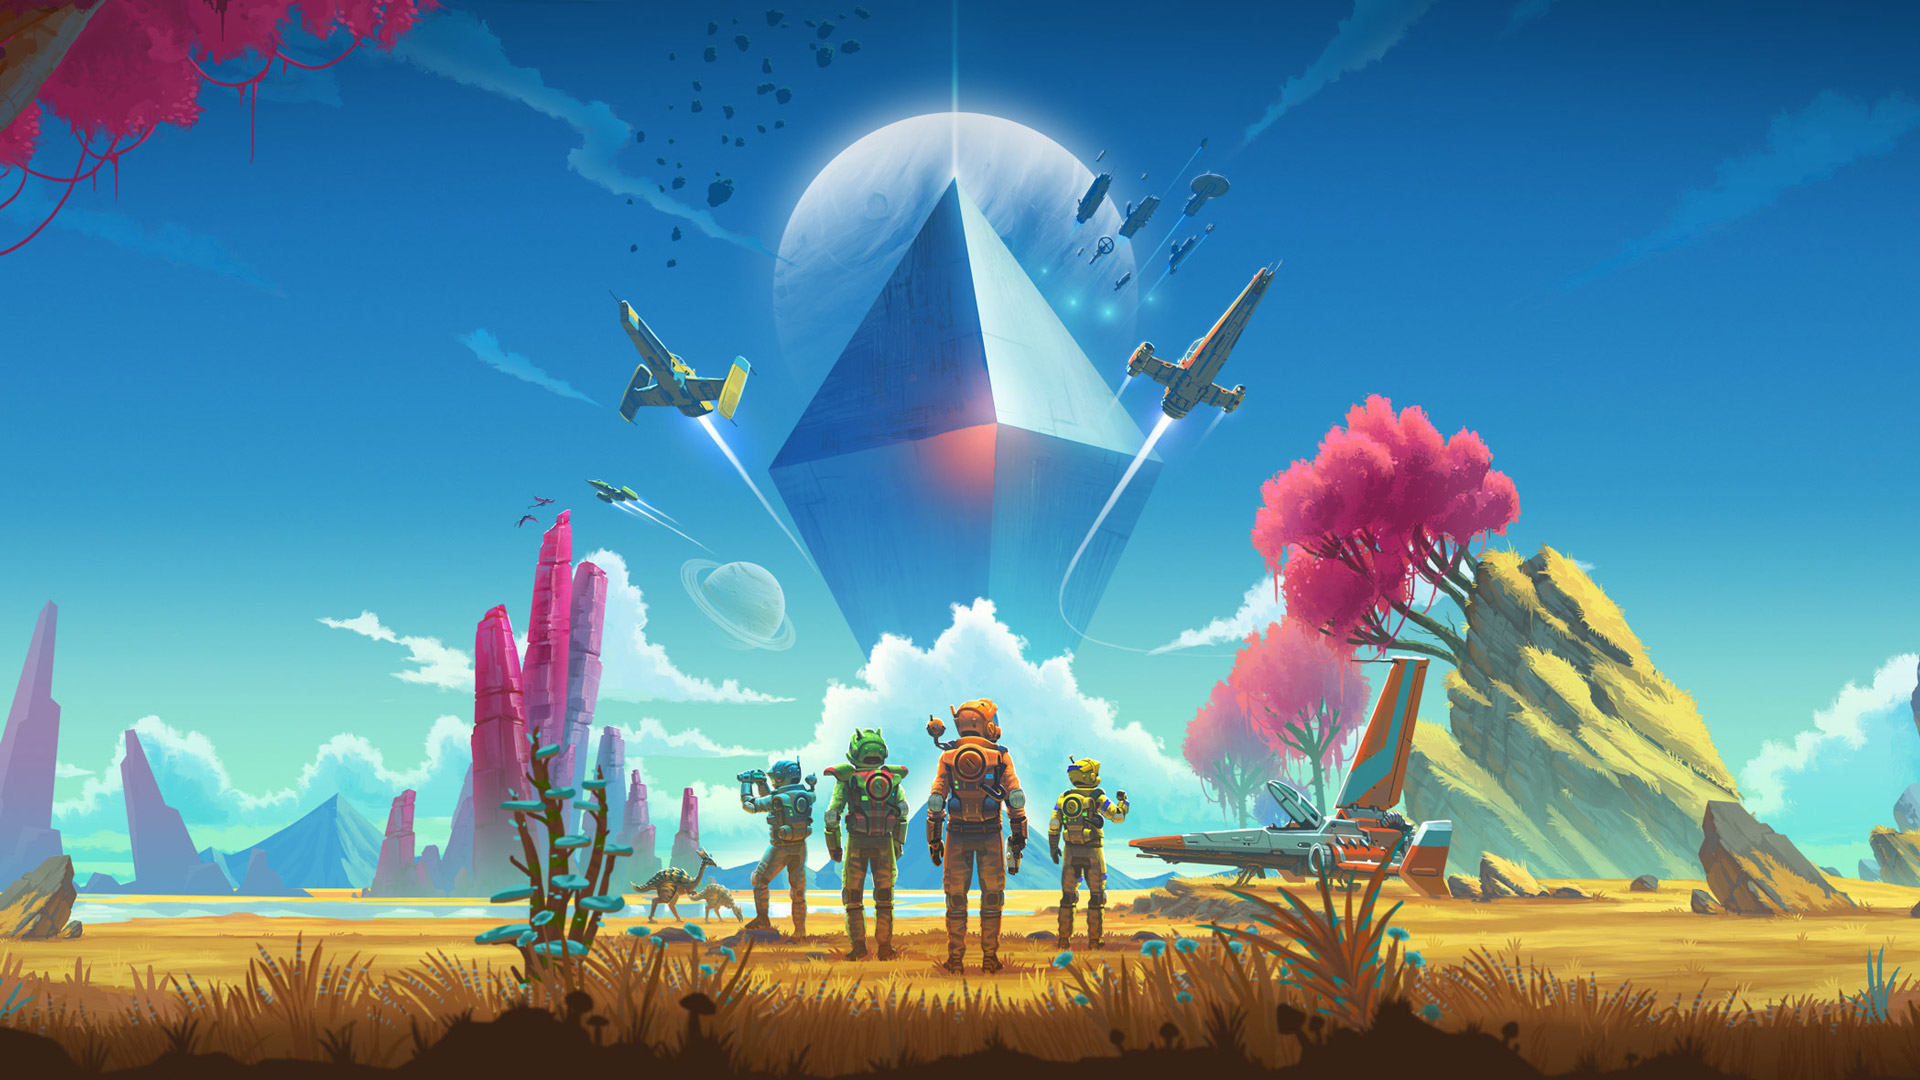 Hands-on: 'No Man's Sky' in VR Promises a Galaxy Full of Possibilities, with Friends